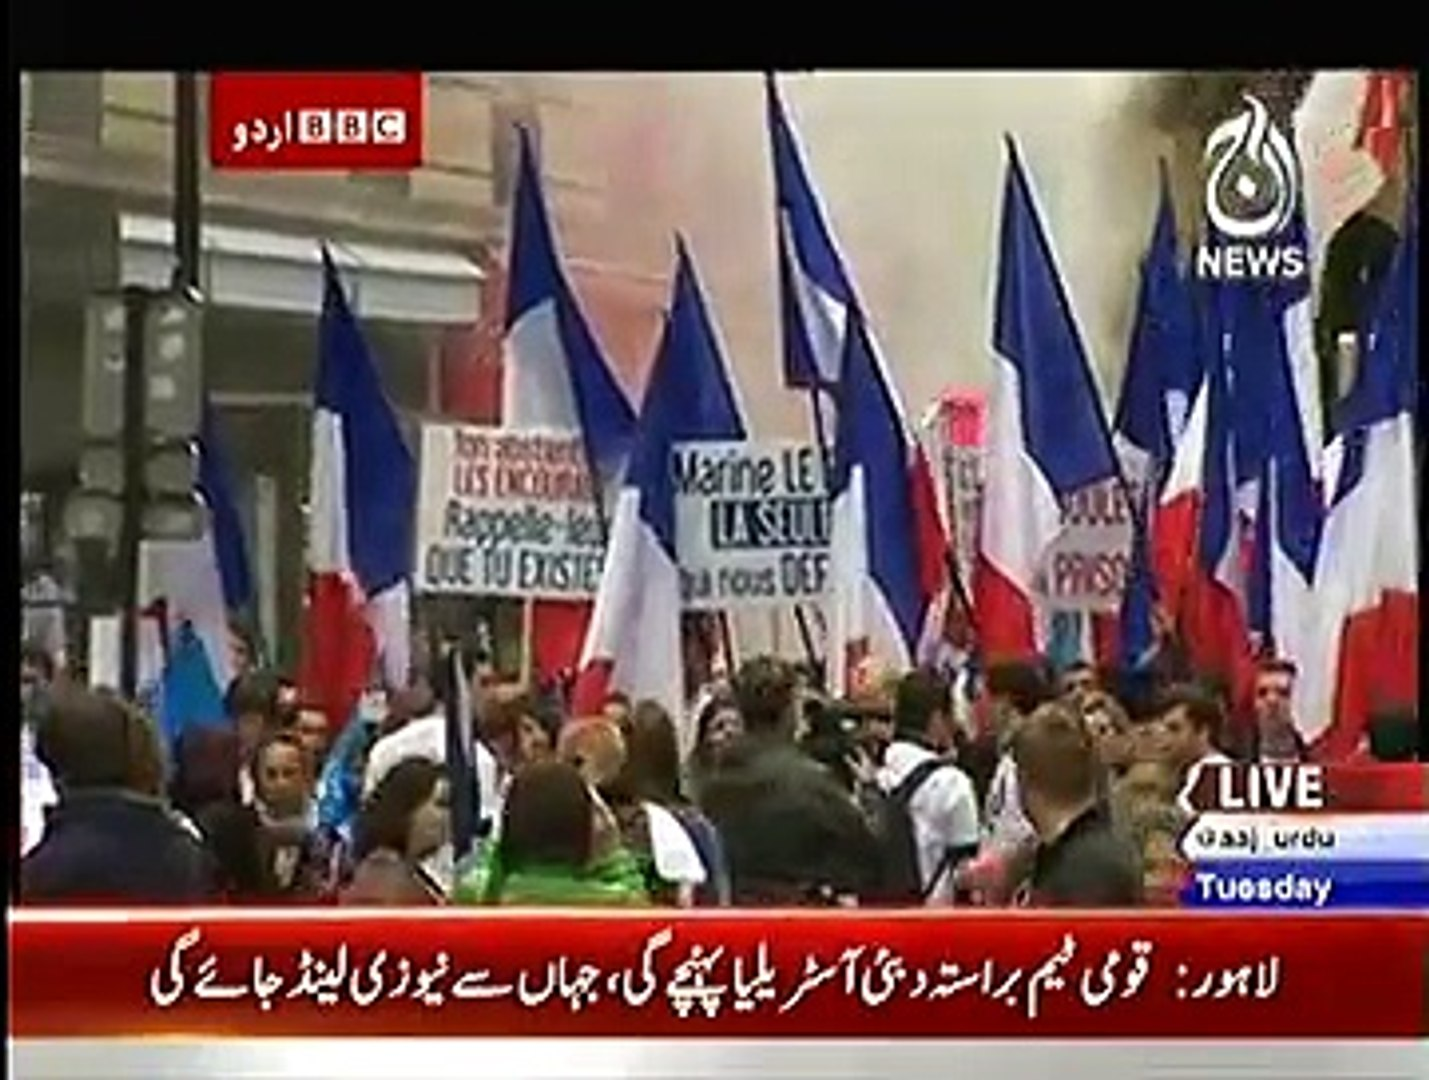 Bbc Urdu Sairbeen On Aaj News ~ 20th January 2015 - Live Pak News